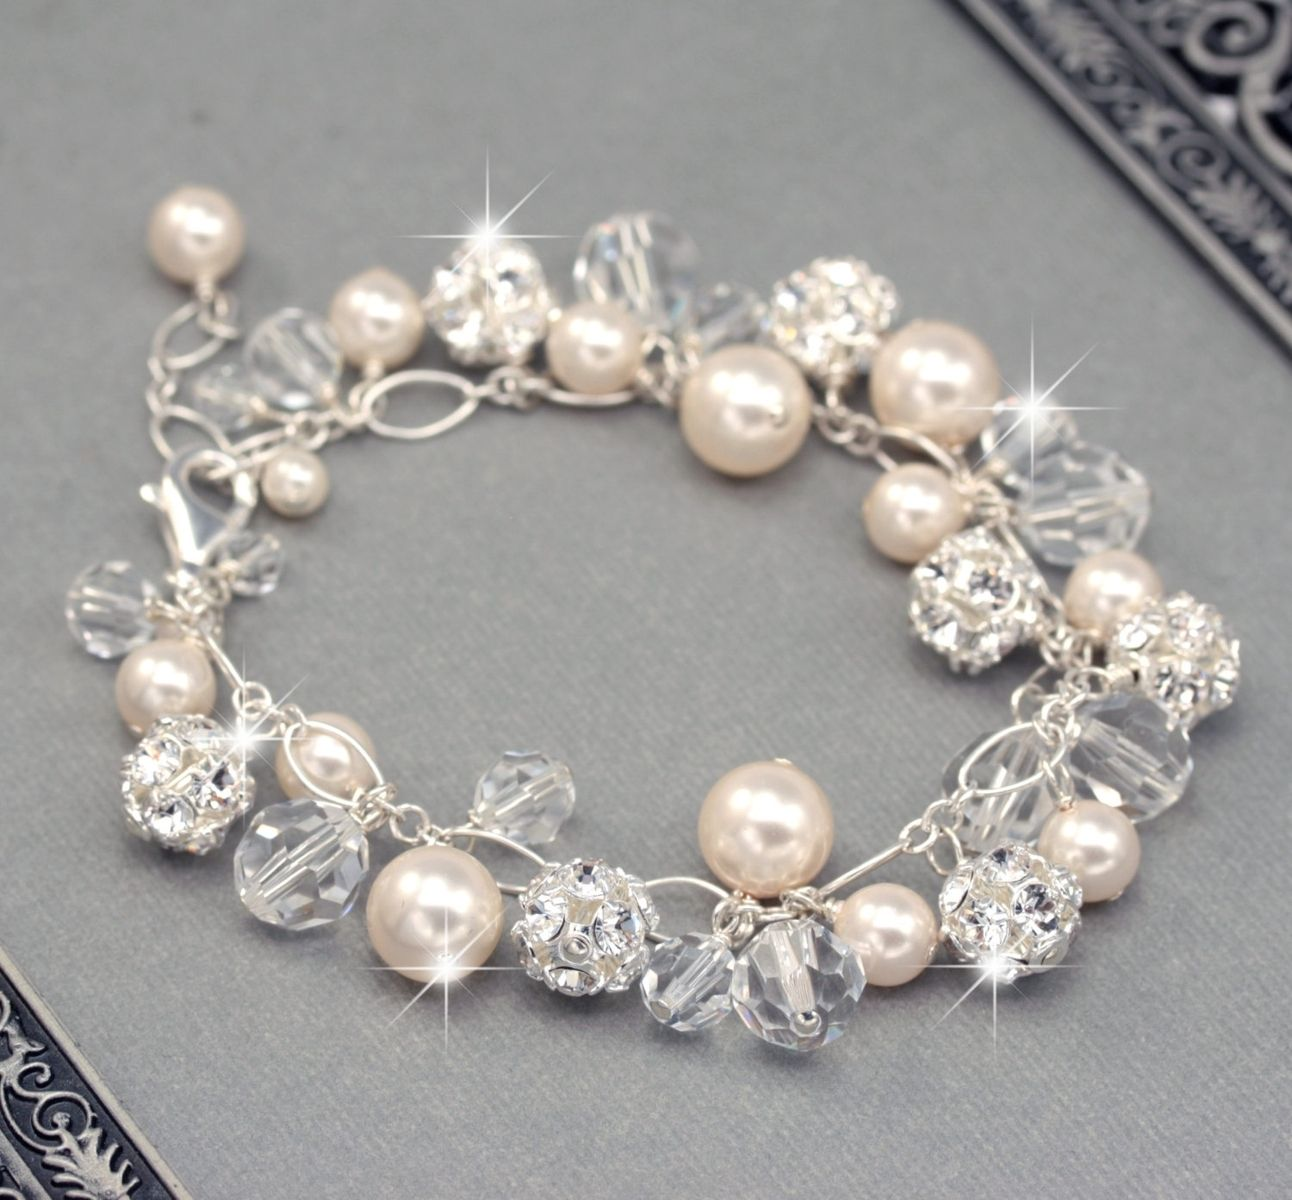 Buy Hand Crafted Bridal Bracelet  Swarovski Crystals Pearls And Rhinestones made to order